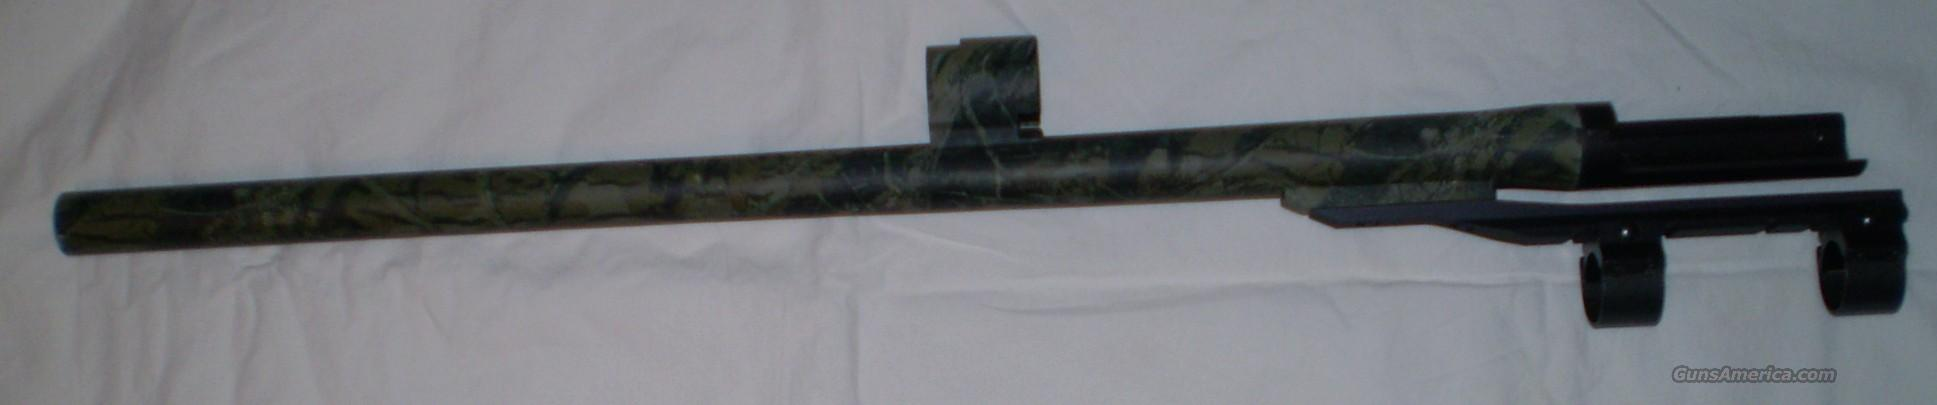 "Remington rifled slug barrel camo 2 3/4-3"" 1187  Non-Guns > Barrels"